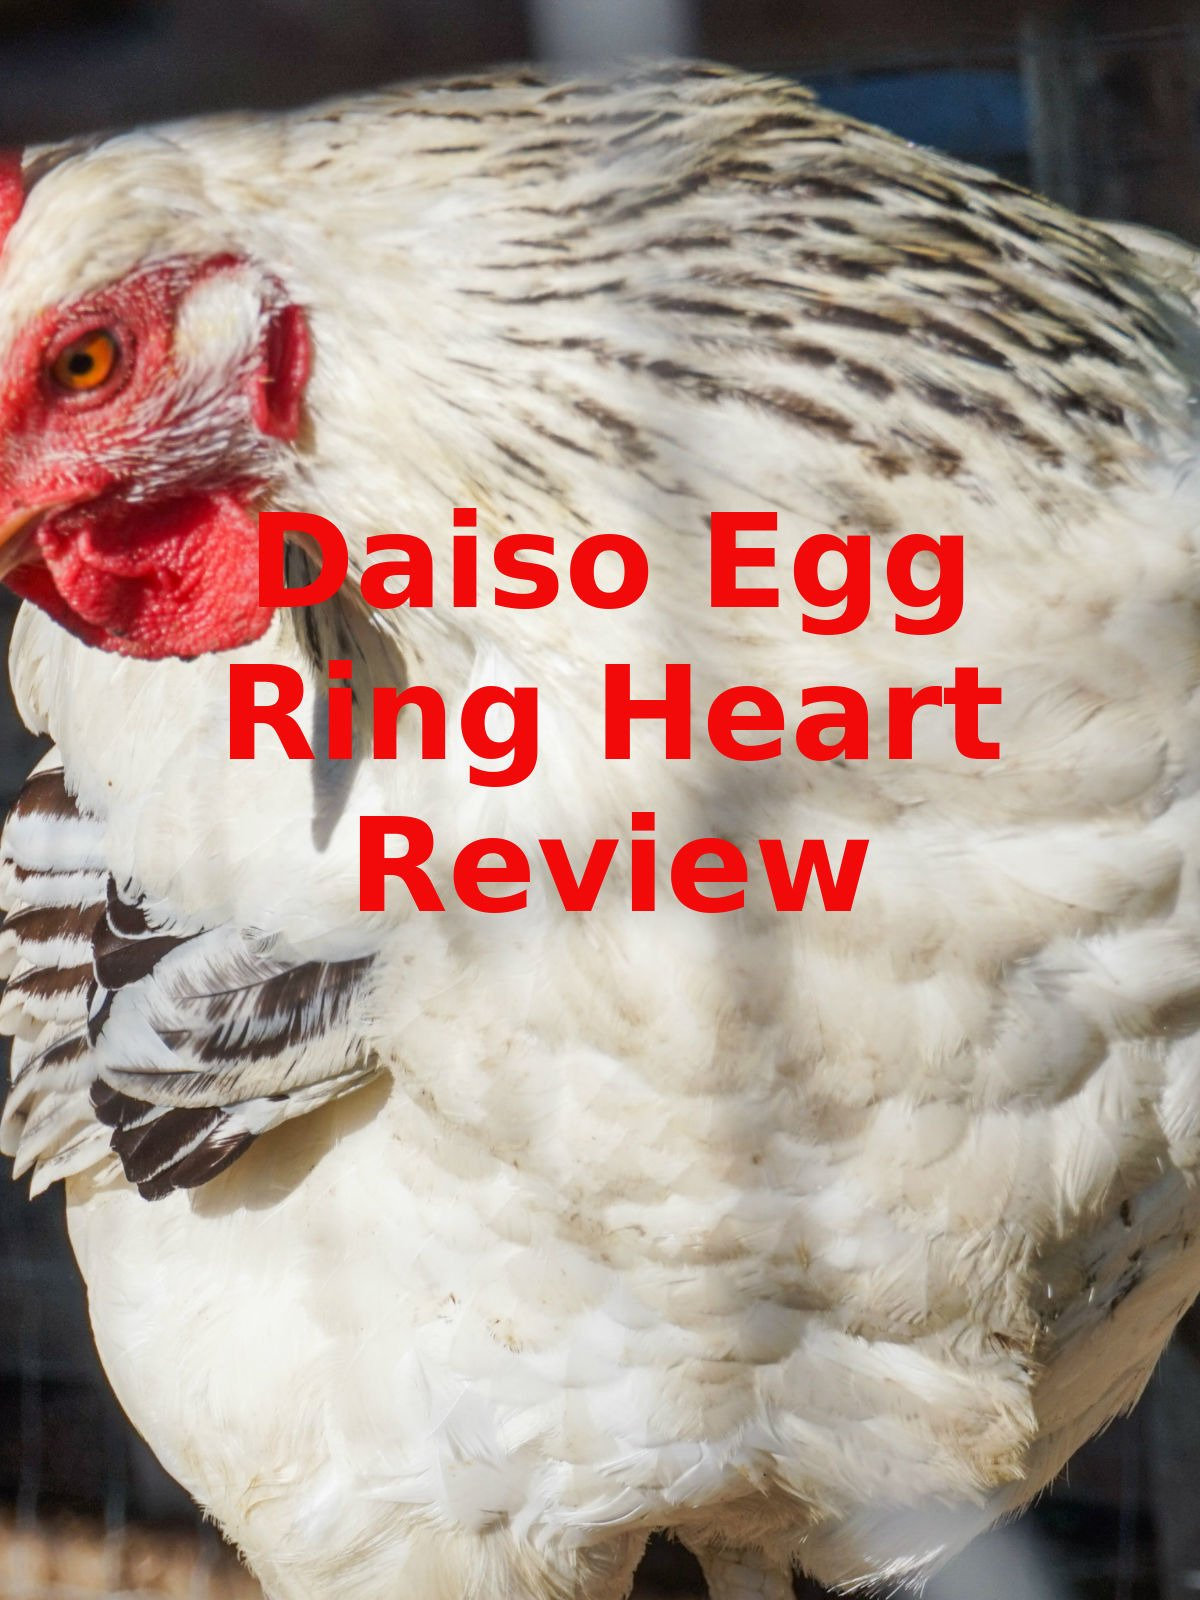 Review: Daiso Egg Ring Heart Review